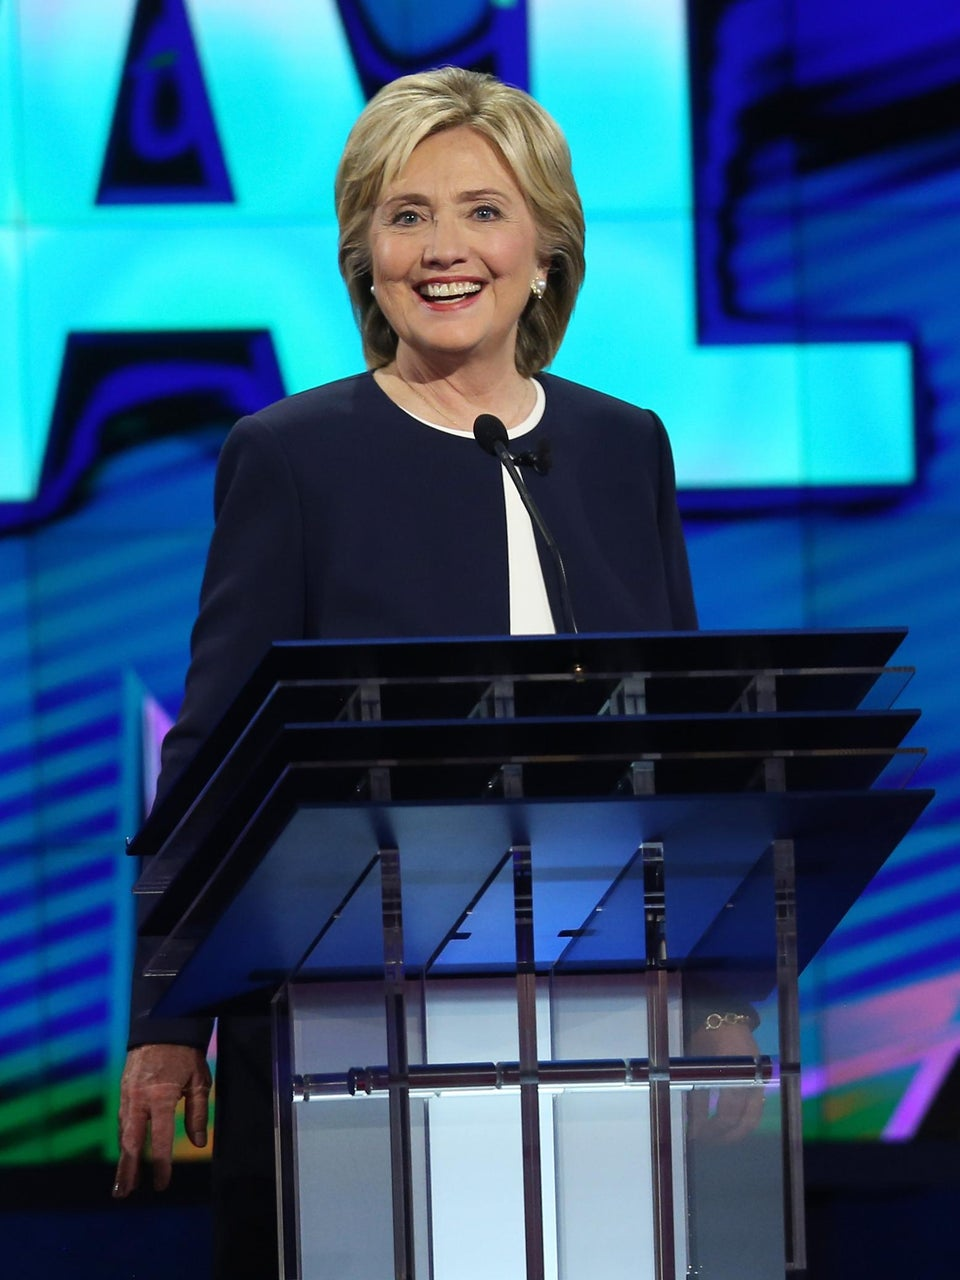 ESSENCE Poll: Did the Democratic Debate Topics Speak to Your Situation?